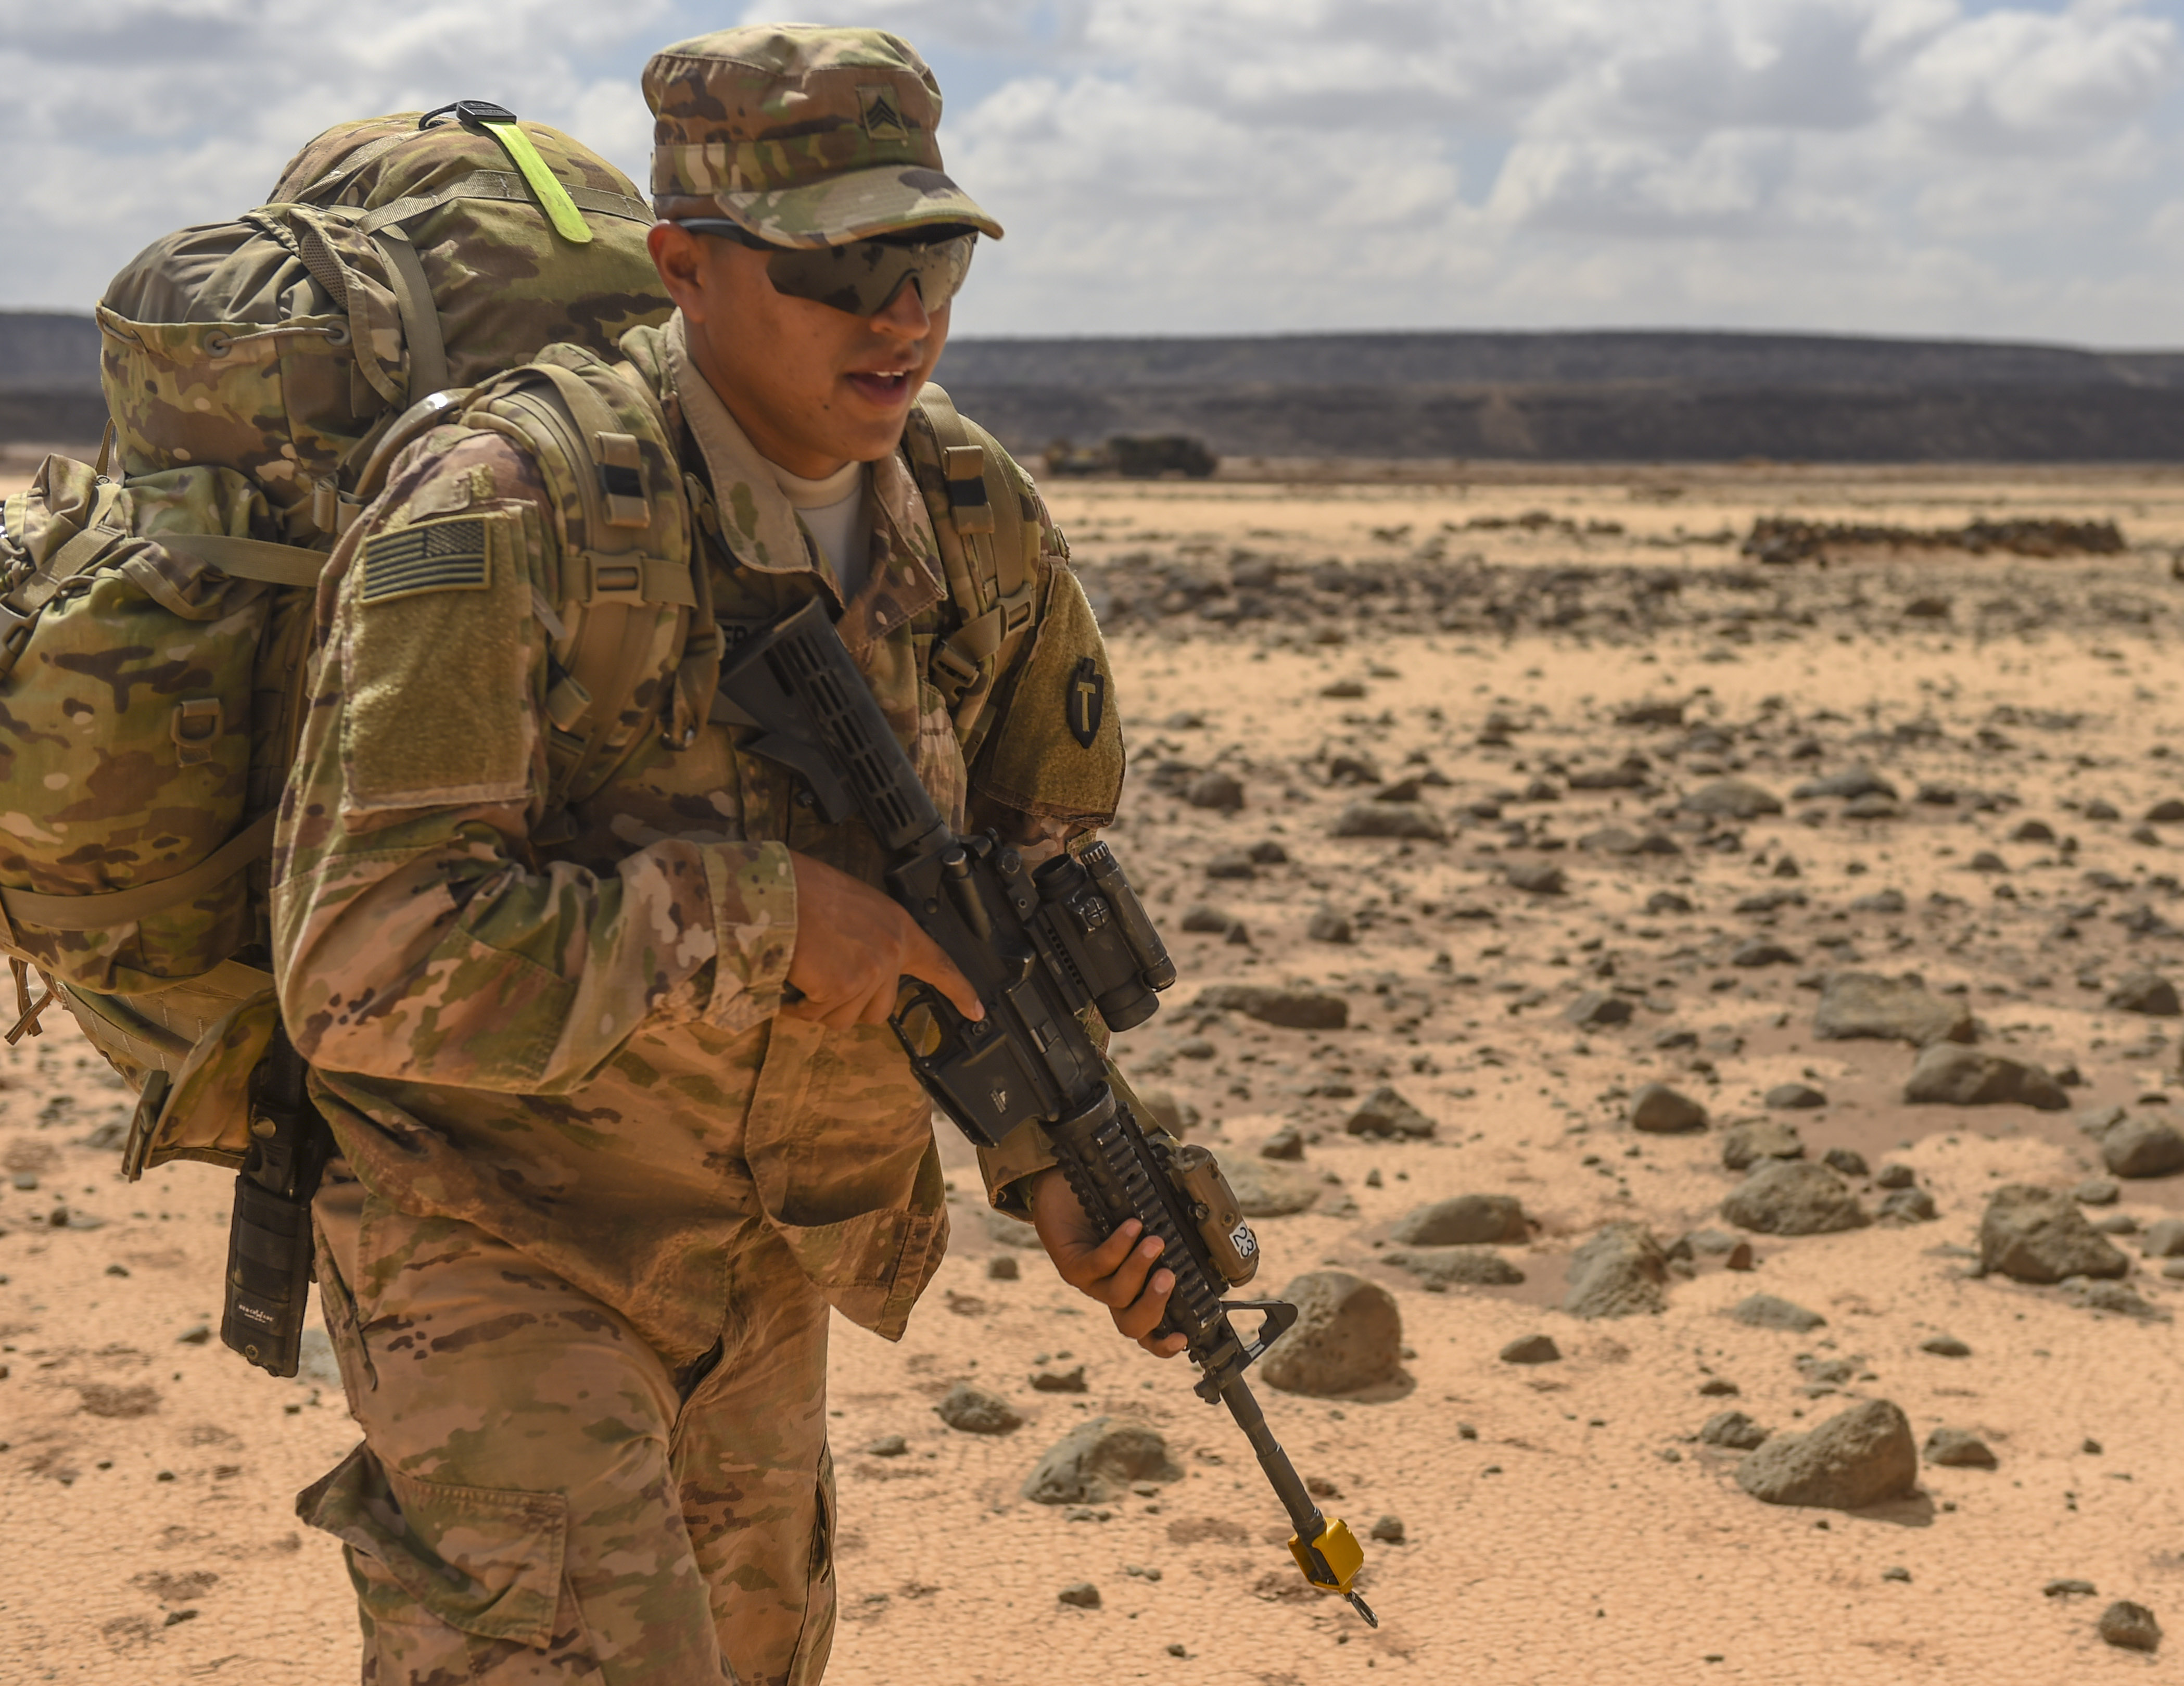 U.S. Army National Guard Sgt. Gabriel Mancera, 3rd Battalion, 144th Infantry Regiment, Task Force Bayonet, carries his rucksack to his defensive position during the first day of a French Desert Commando Course at the Djibouti Range Complex near Arta, Djibouti, Nov. 26, 2017. The 12-day course will expose service members to the fundamentals of desert combat, survival, and troop movements while also bridging language and cultural barriers between the French and American troops. (U.S. Air Force photo by Staff Sgt. Timothy Moore)